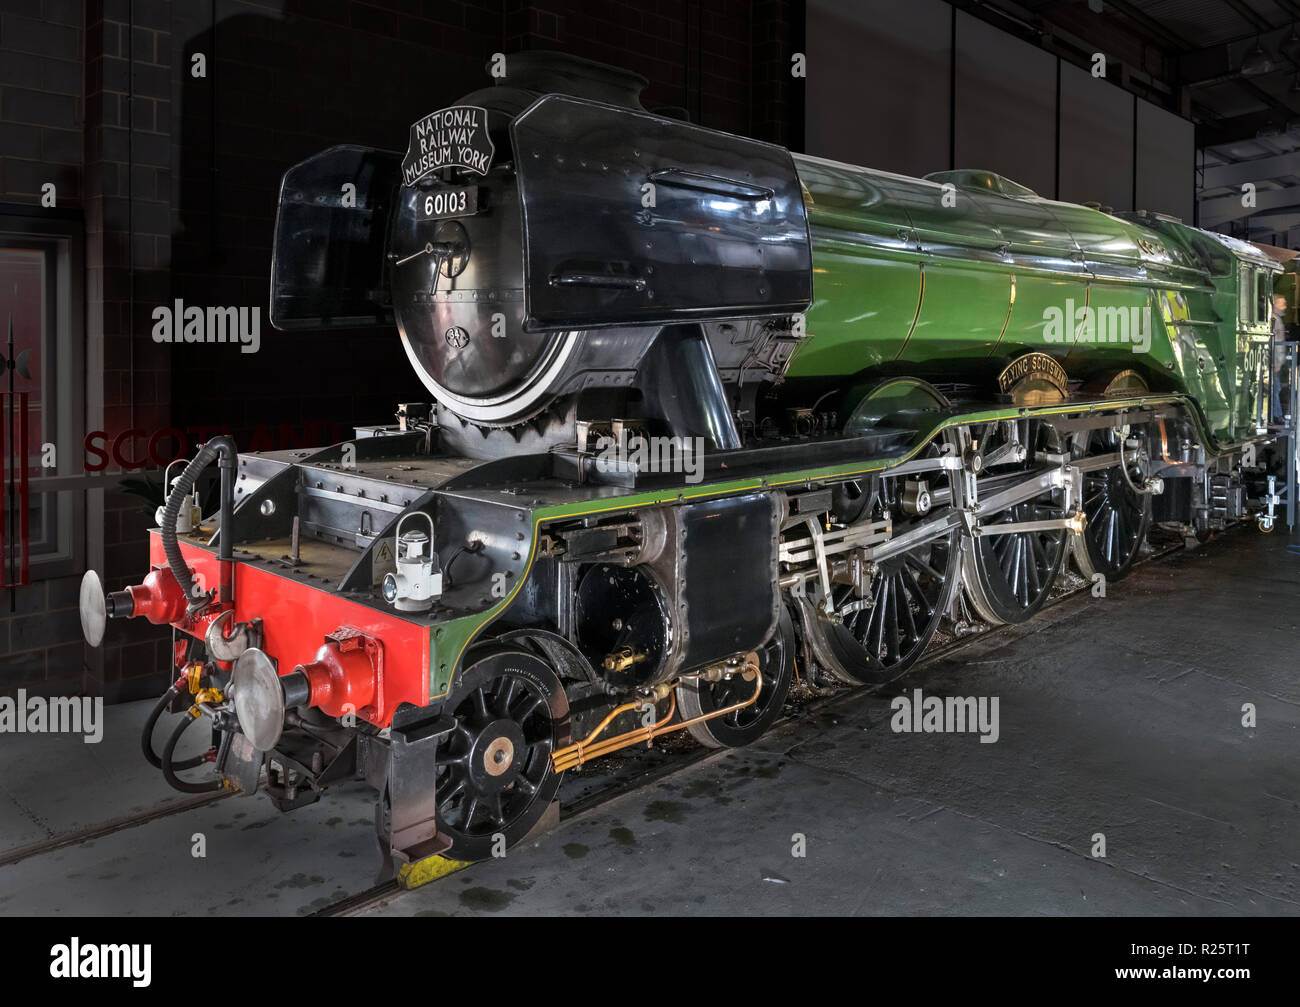 The Flying Scotsman steam train, National Railway Museum, York, England, UK. - Stock Image